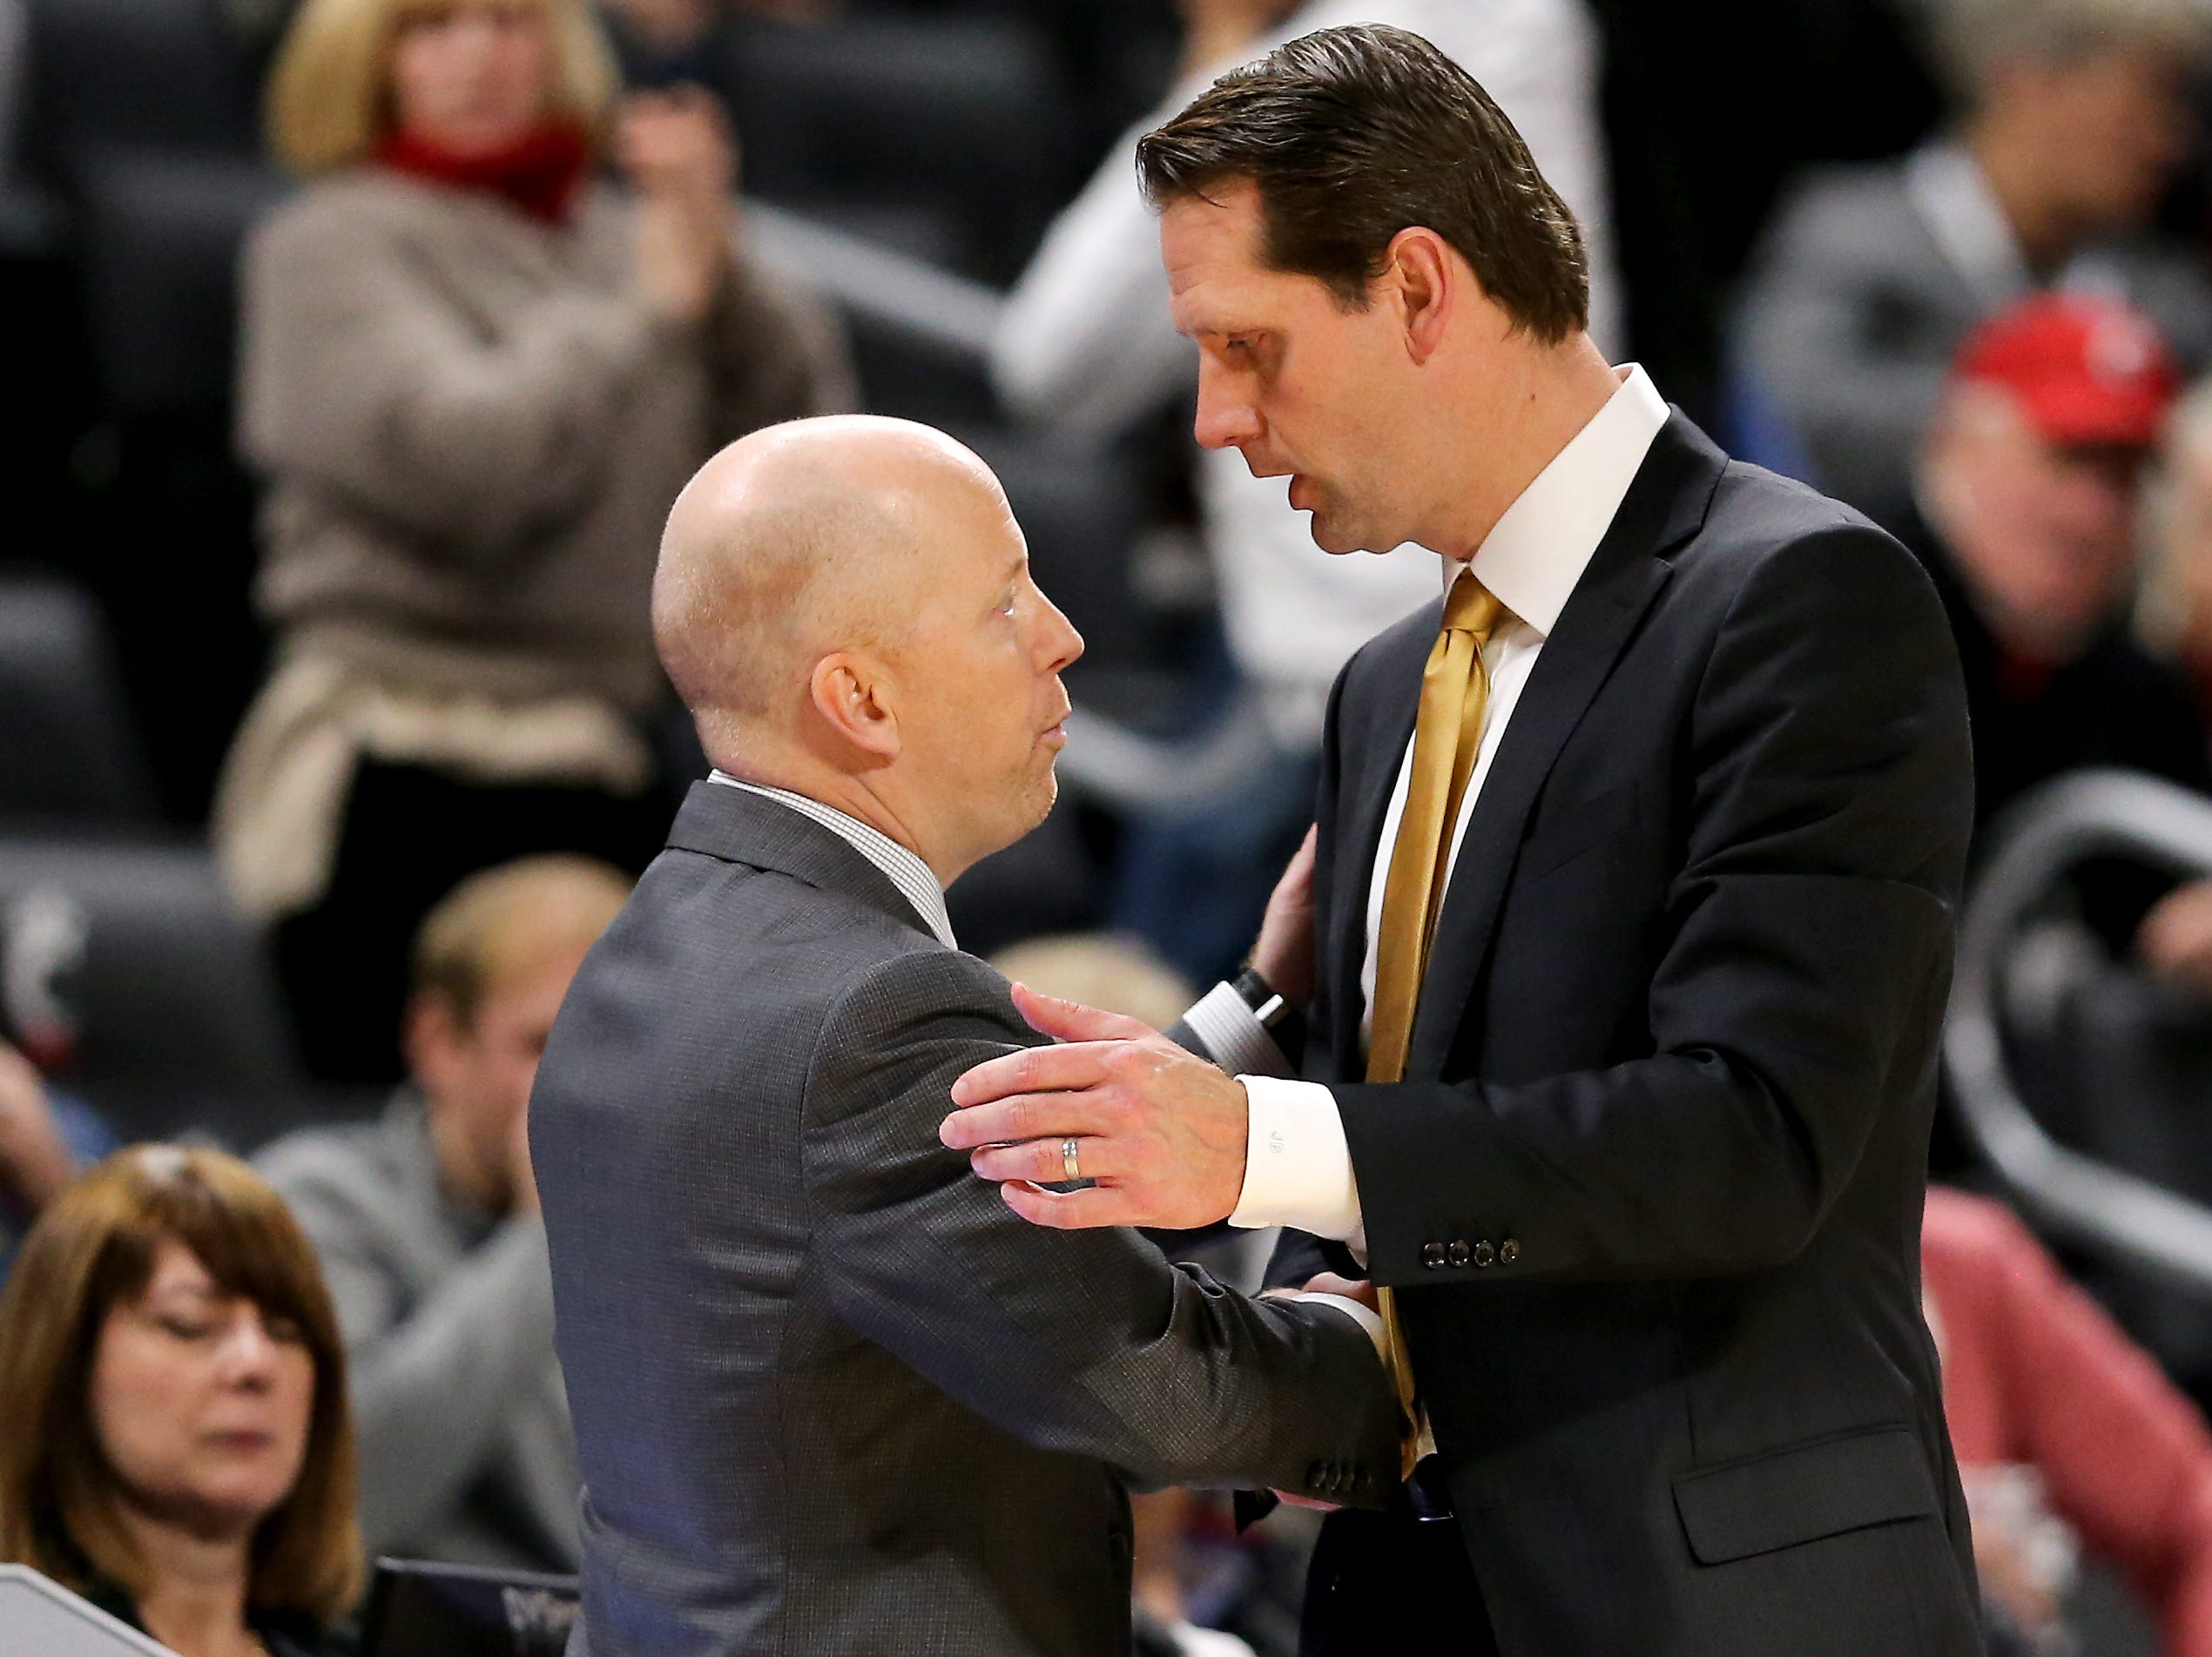 Cincinnati Bearcats head coach Mick Cronin, left, and Northern Kentucky Norse head coach John Brannen, shake hands in the final seconds of the second half of an NCAA college basketball game, Tuesday, Dec. 4, 2018, at Fifth Third Arena in Cincinnati.